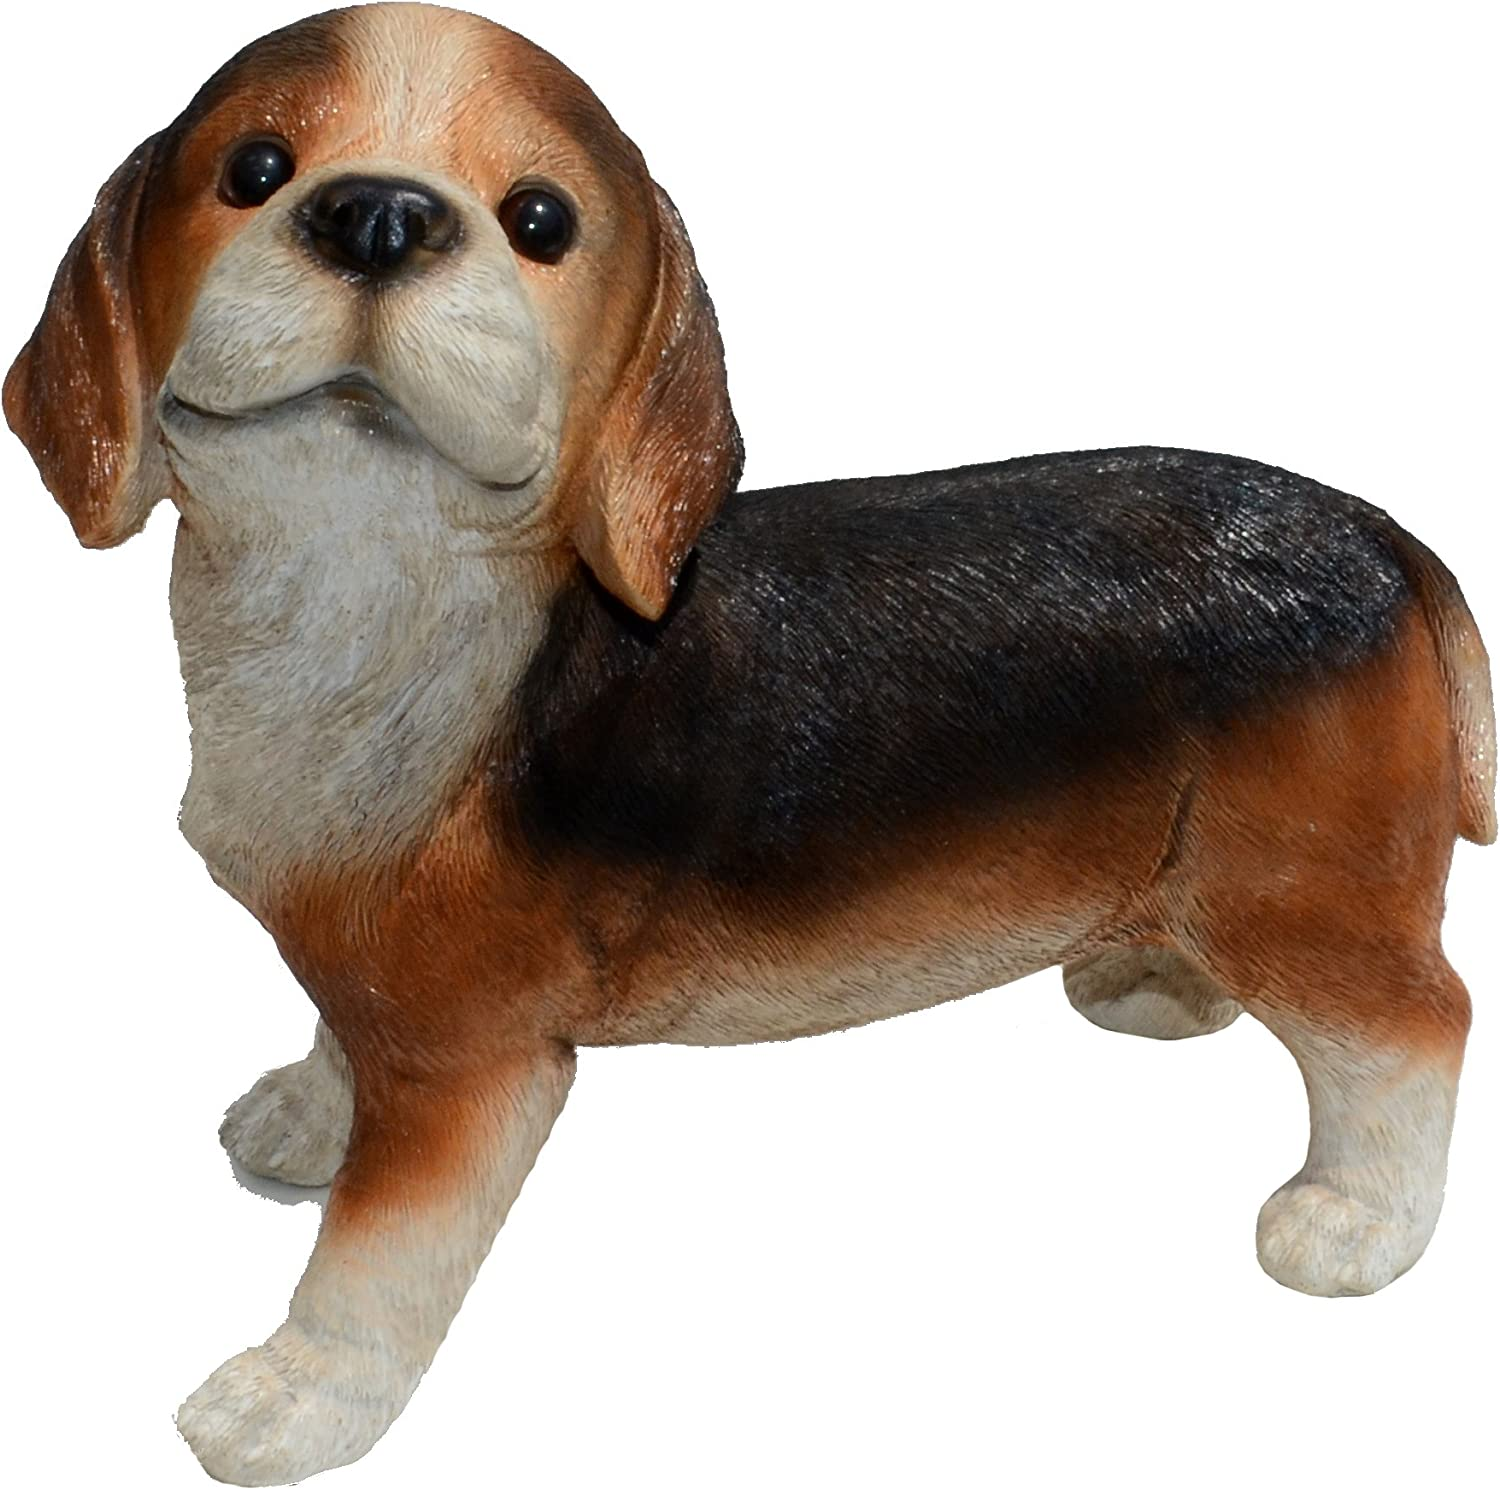 Michael Carr Designs Nosy-Beagle L Puppy Love Outdoor Dog Figurine for Gardens, patios and lawns (80096)